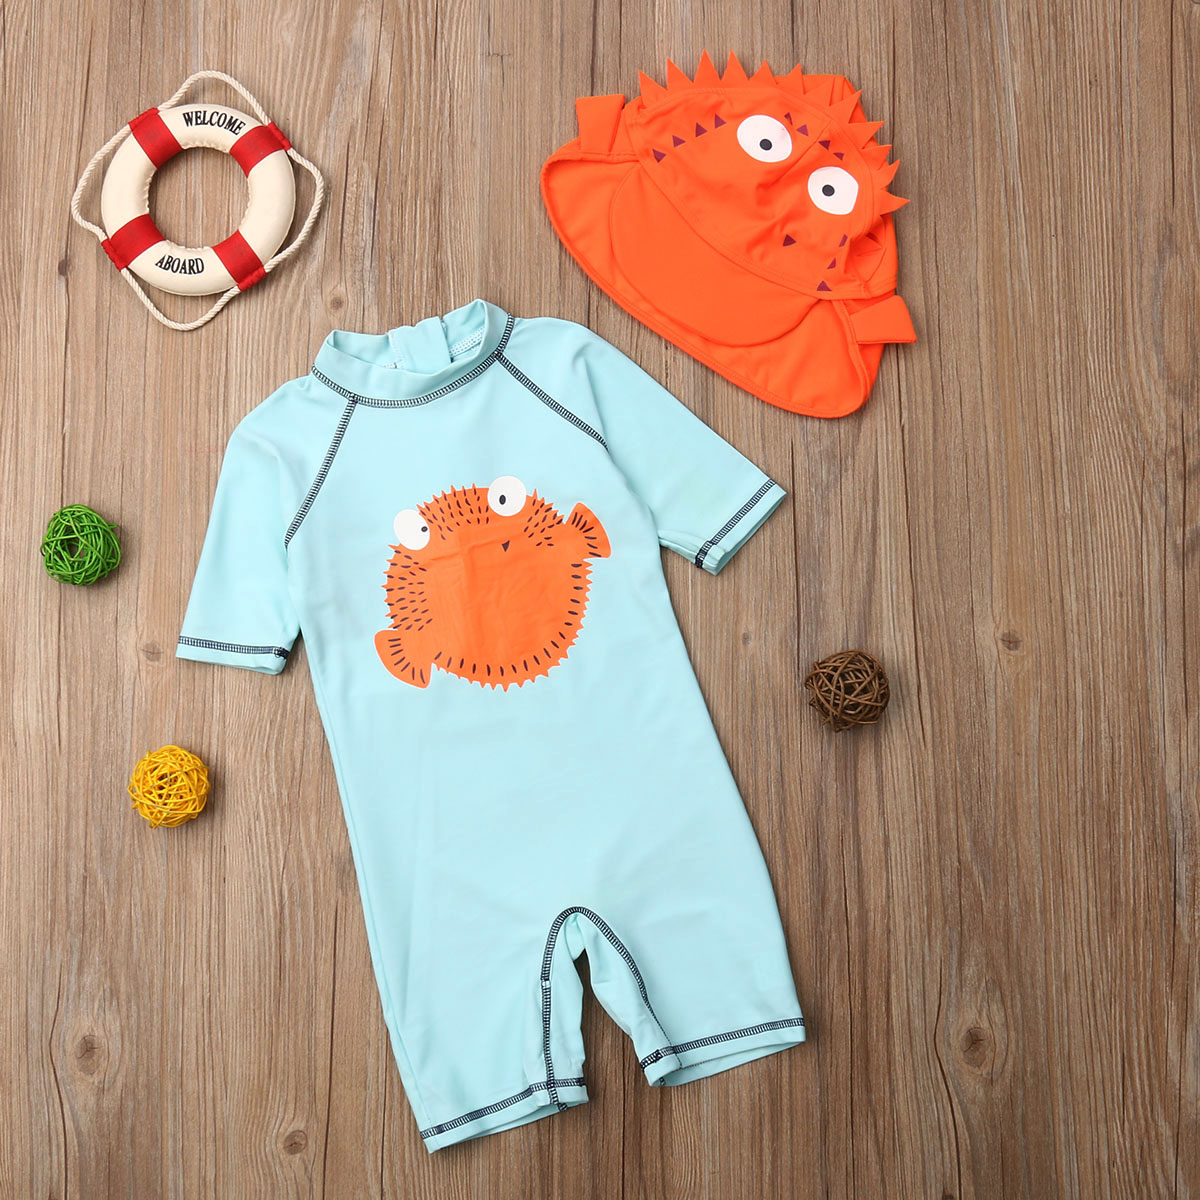 Kuner Baby Cotton Warm 2 Piece Cartoon Clothing Set Long Sleeve Sweatshirts and Pant Outfit for Boys Girls